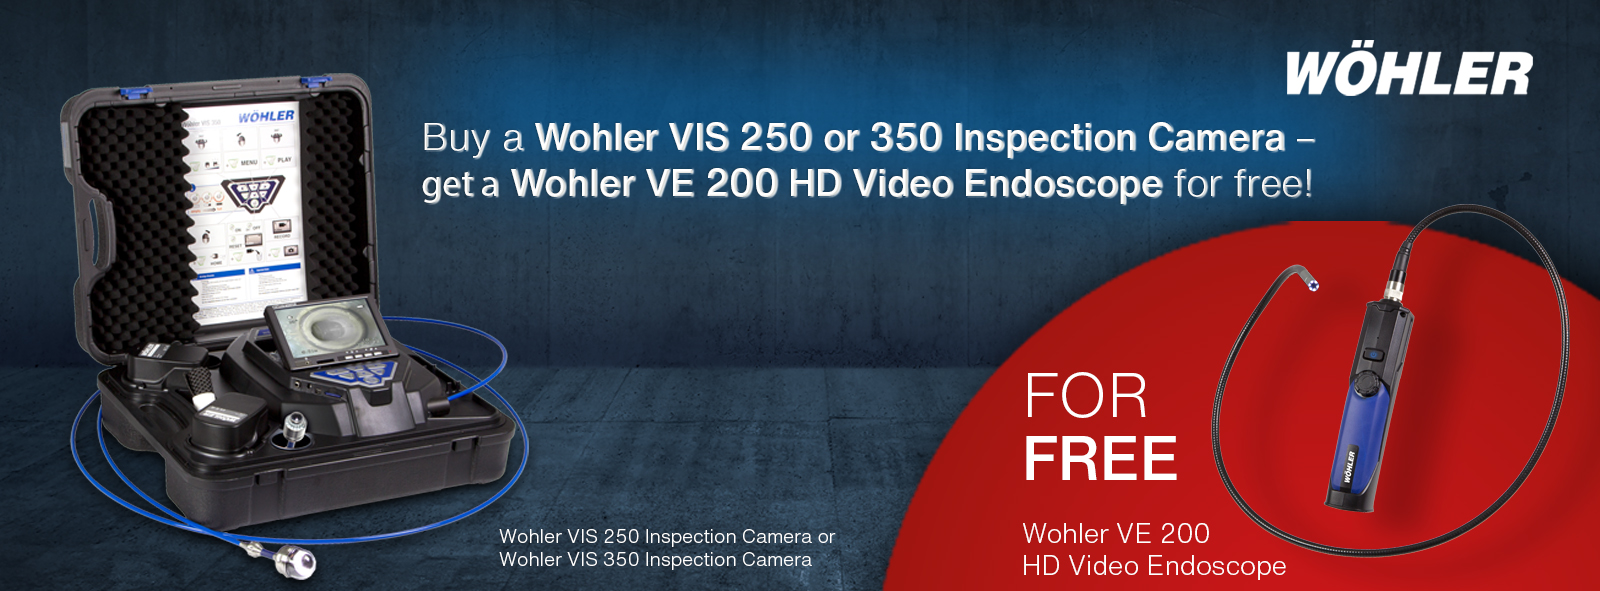 Wohler VIS 250 and 350 Inspection Camera Promotion